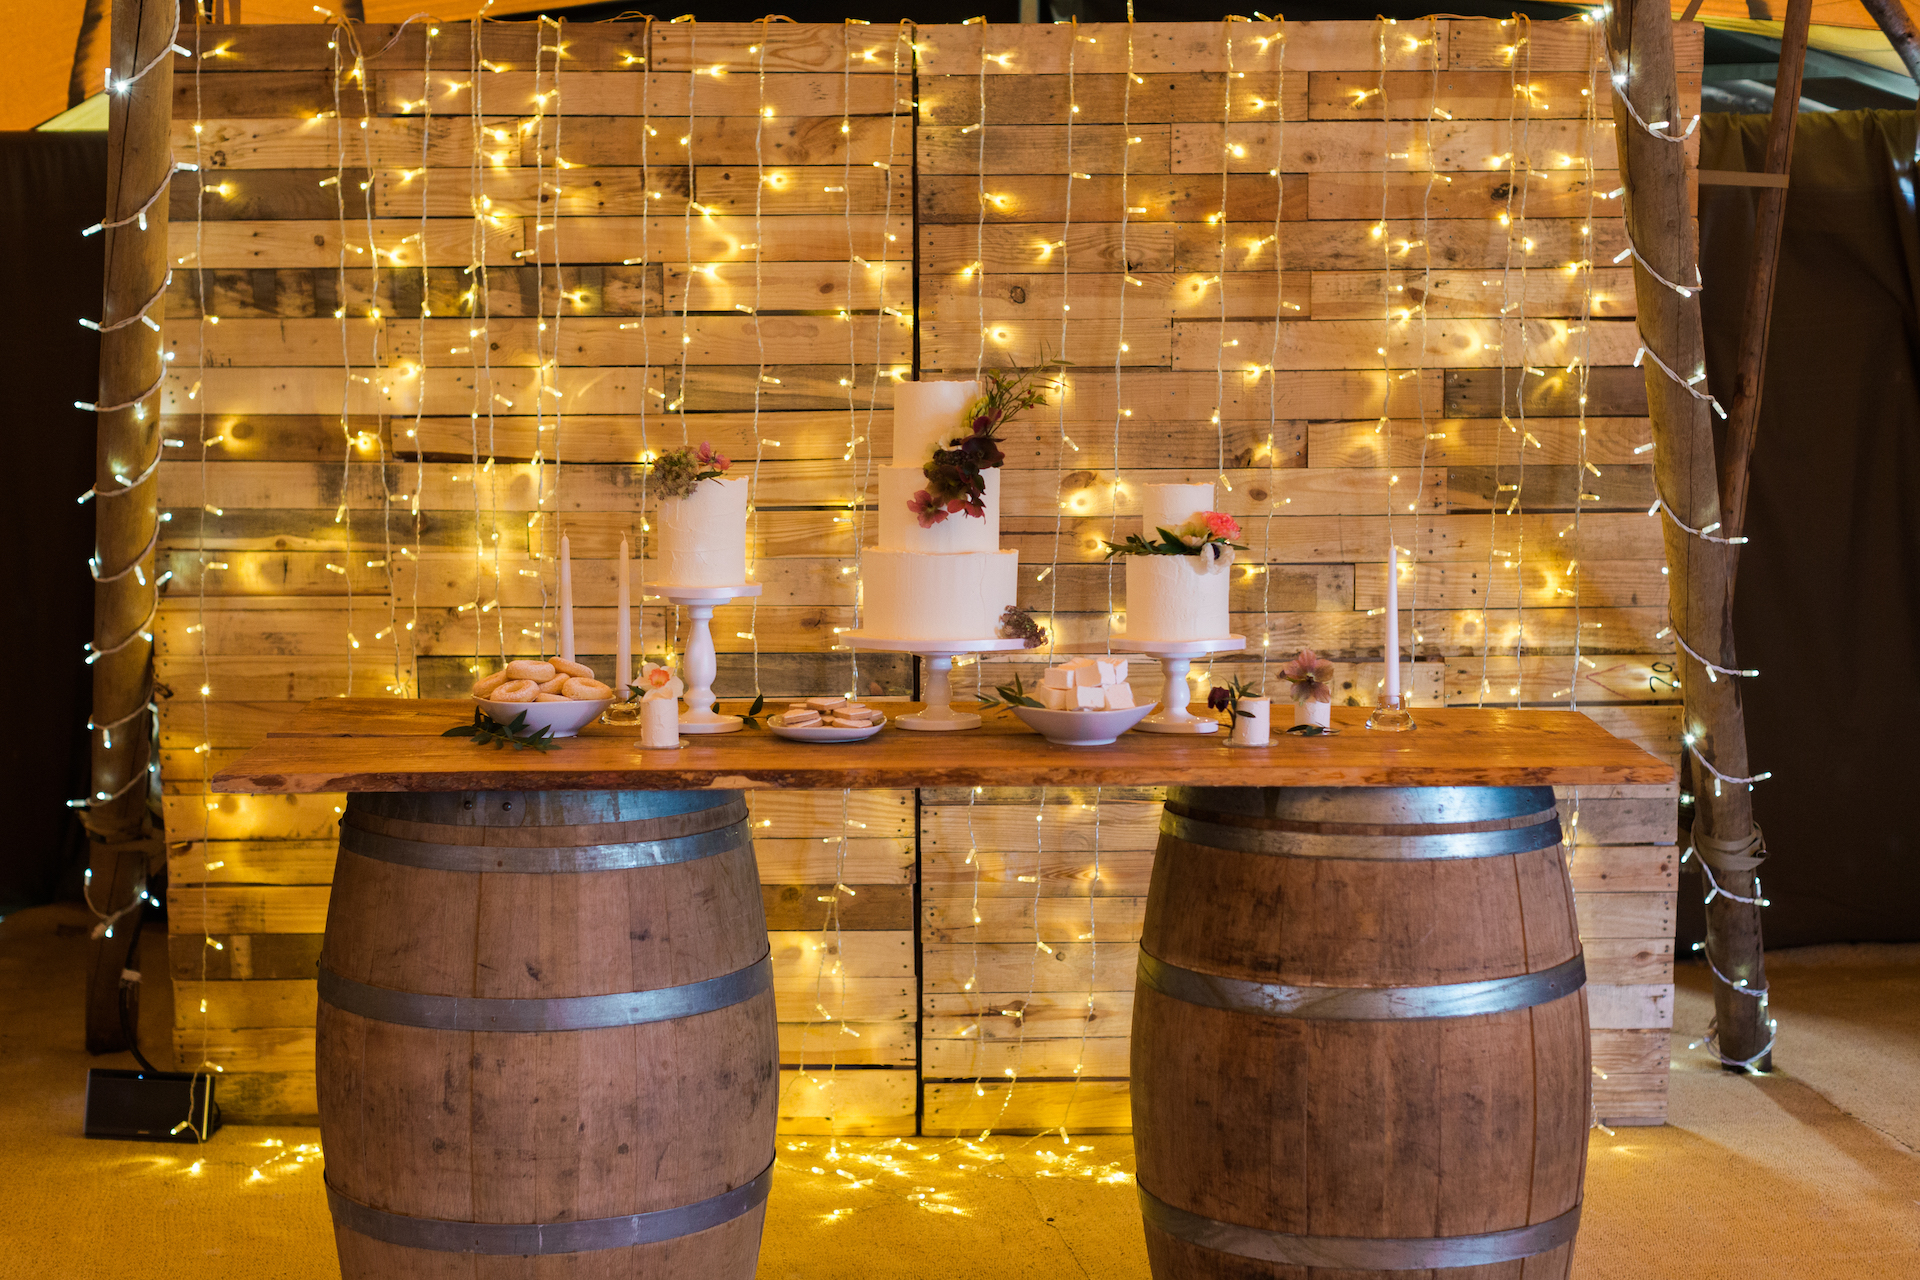 PapaKåta Spring Open Weekend Teepee captured by Lucy Davenport Photography: Wine Barrel Bar with Cake Display by Cherry Blossom Cakes, Fairy Light Baffle Backdrop